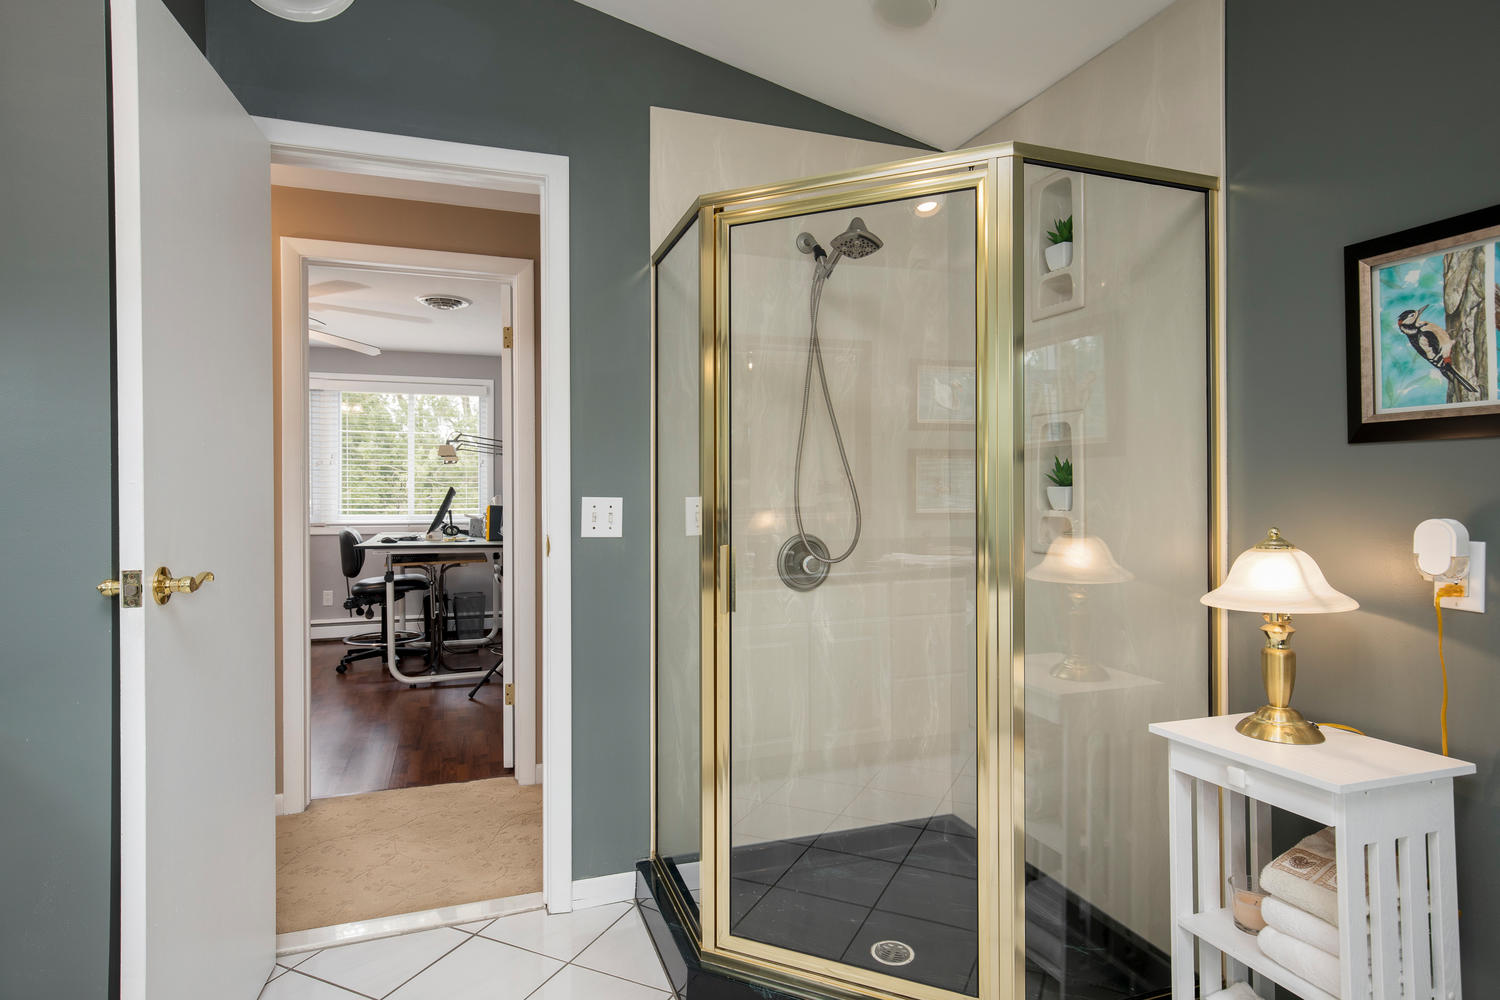 5258 Armor Duells Rd Orchard-large-020-002-Bathroom-1500×1000-72dpi